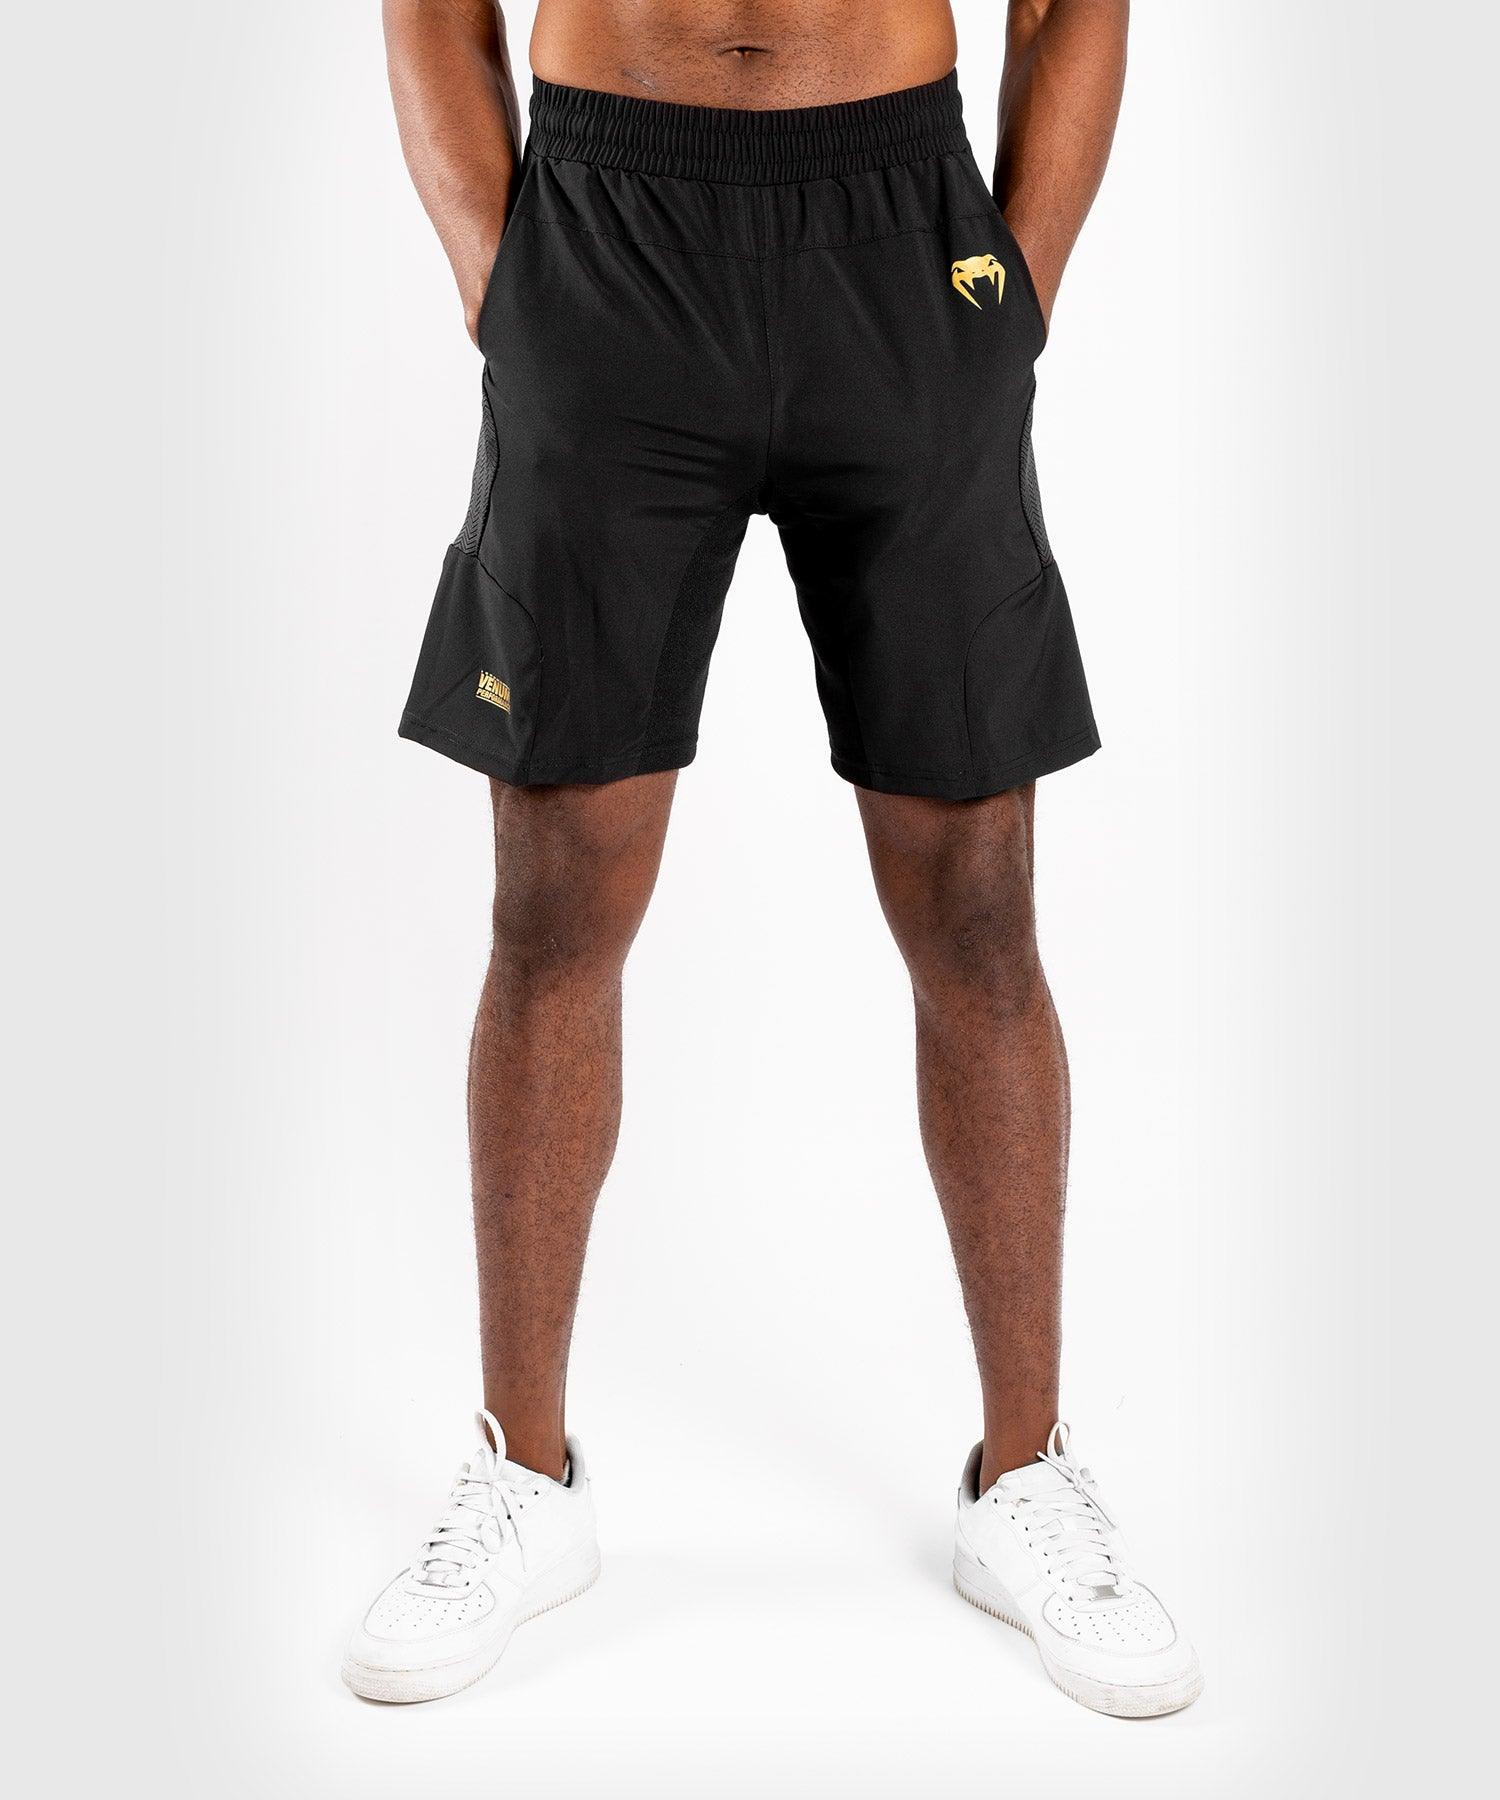 Venum G-Fit Training Shorts – Black/Gold picture 1